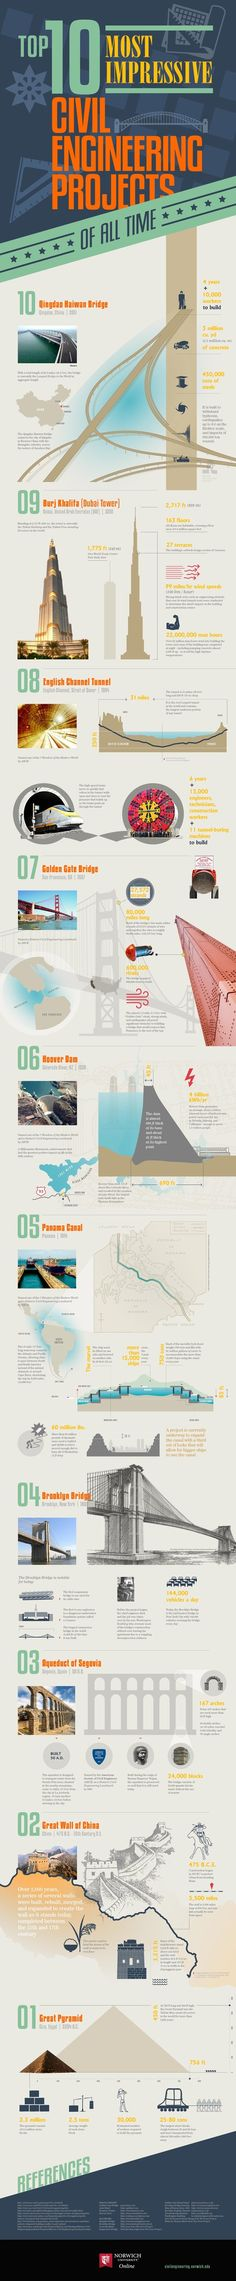 The Ten Most Impressive Engineering Projects of All Time,Courtesy of Civil Engineering Program, Norwich University